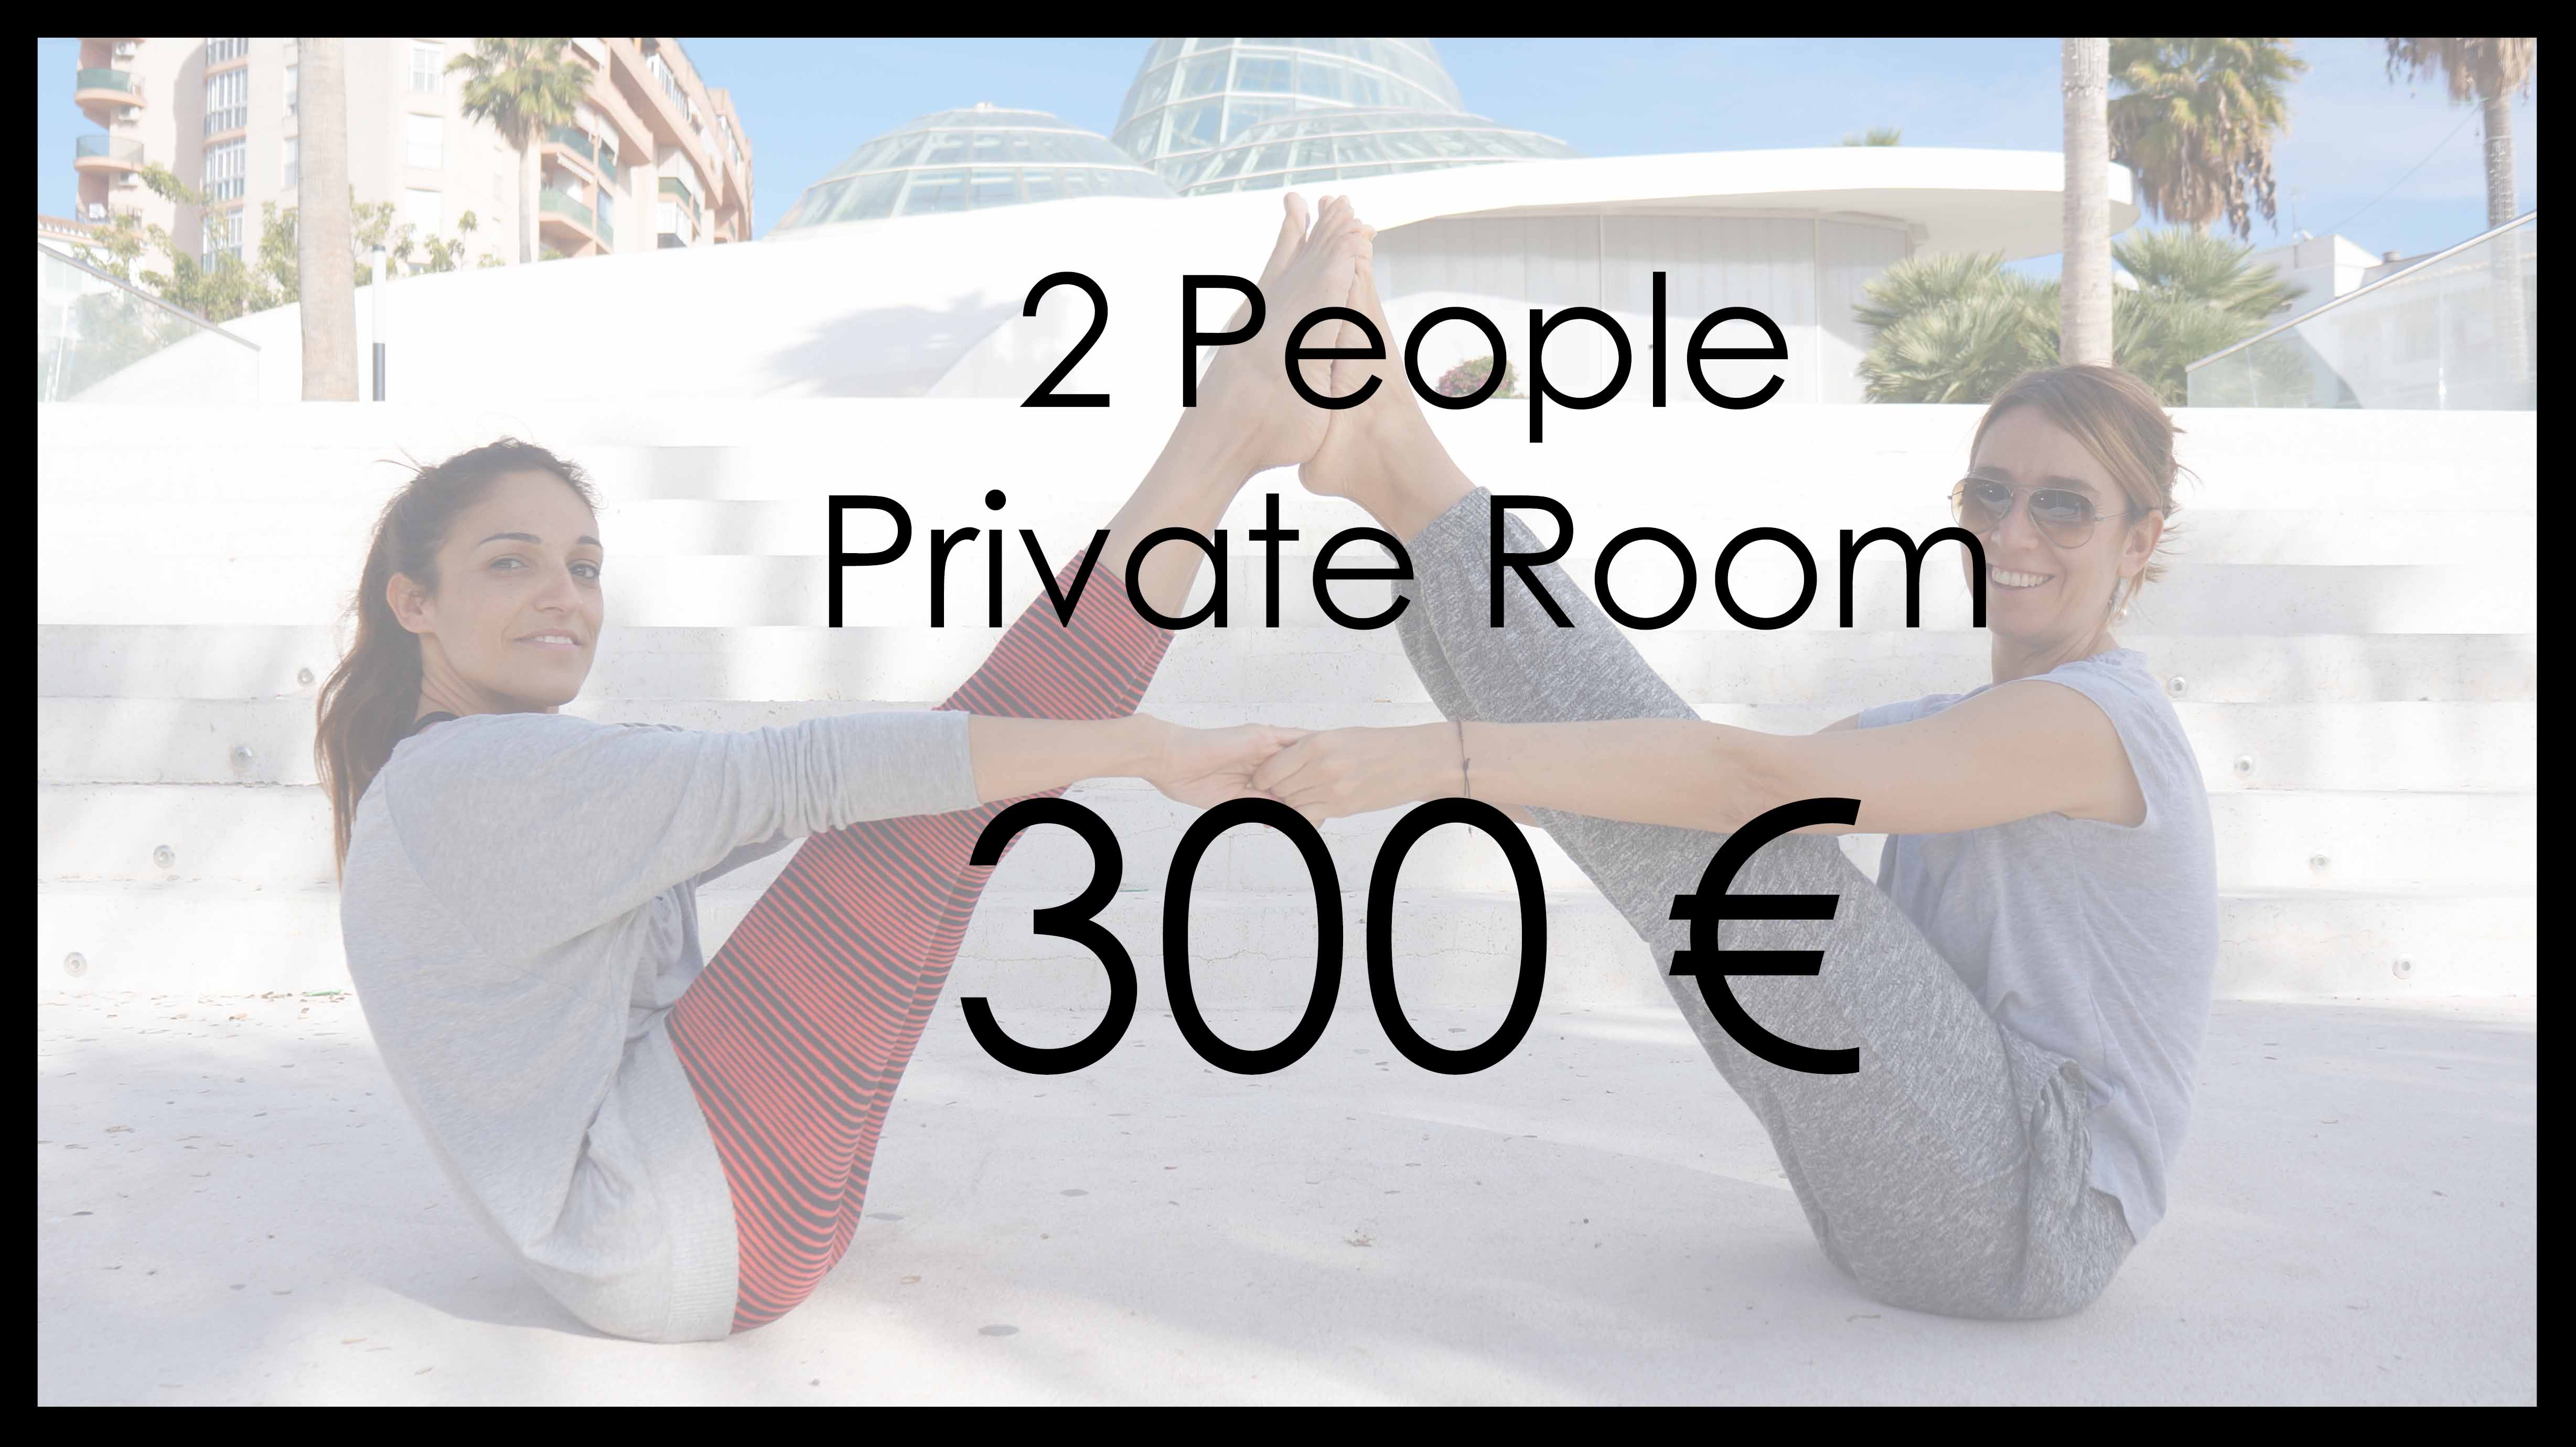 Yoga Retreat for 2 people in a private room